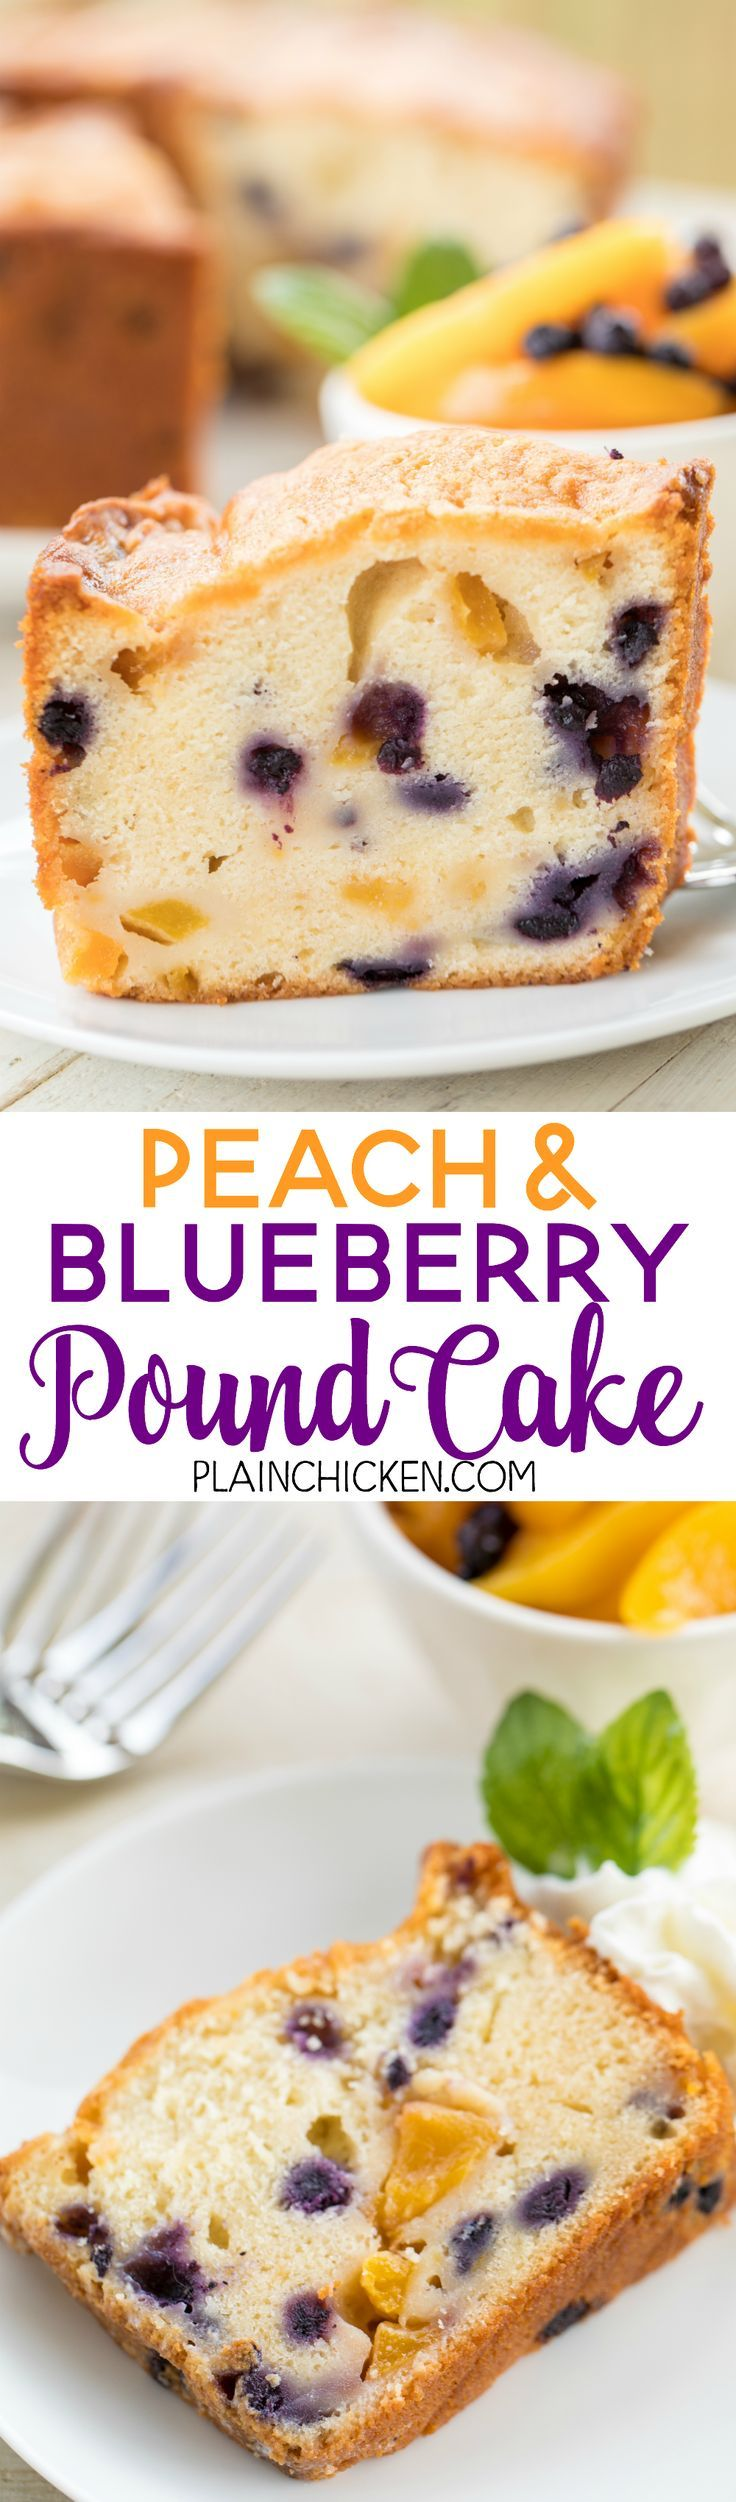 Peach and Blueberry Pound Cake - the perfect summer dessert! Can make ahead of time and serve a few days later. You can even freeze the cake!! Butter, cream cheese, sugar, eggs, milk, flour, baking powder, salt, fresh peaches, fresh blueberries and peach